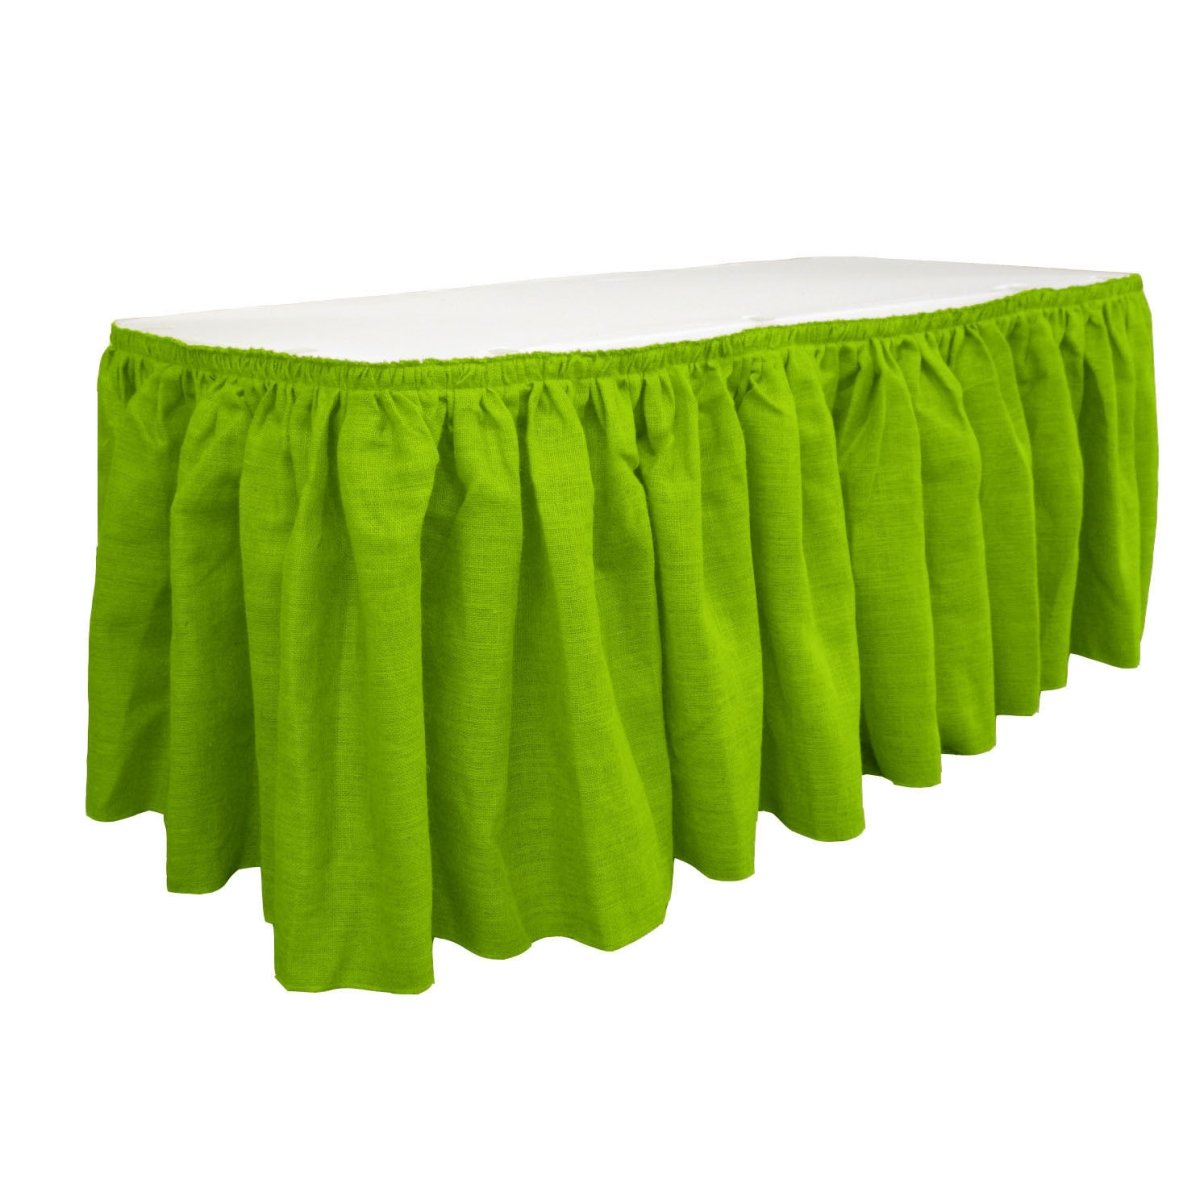 LA Linen SkirtBurlap17x29-10Lclips-Lime Burlap Table Skirt with 10 L-Clips44; Lime - 17 ft. x 29 in.